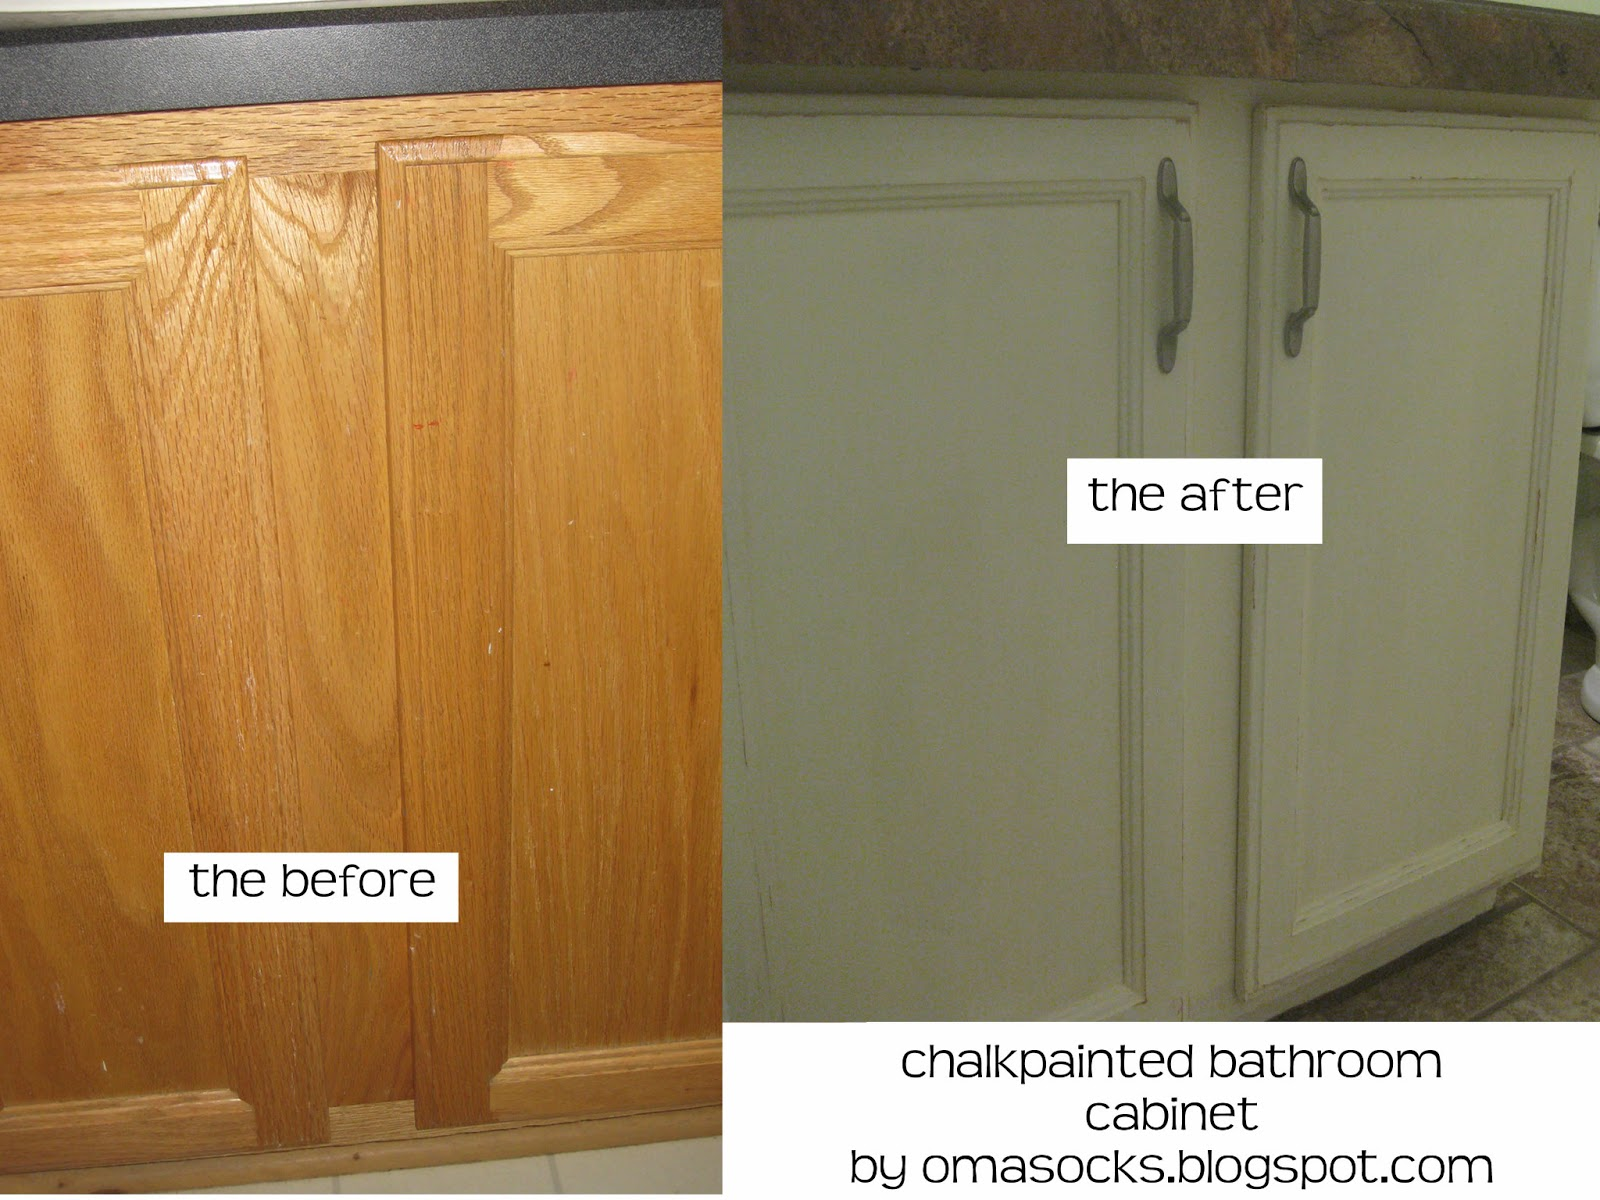 Bathroom Vanity Painted Before and After